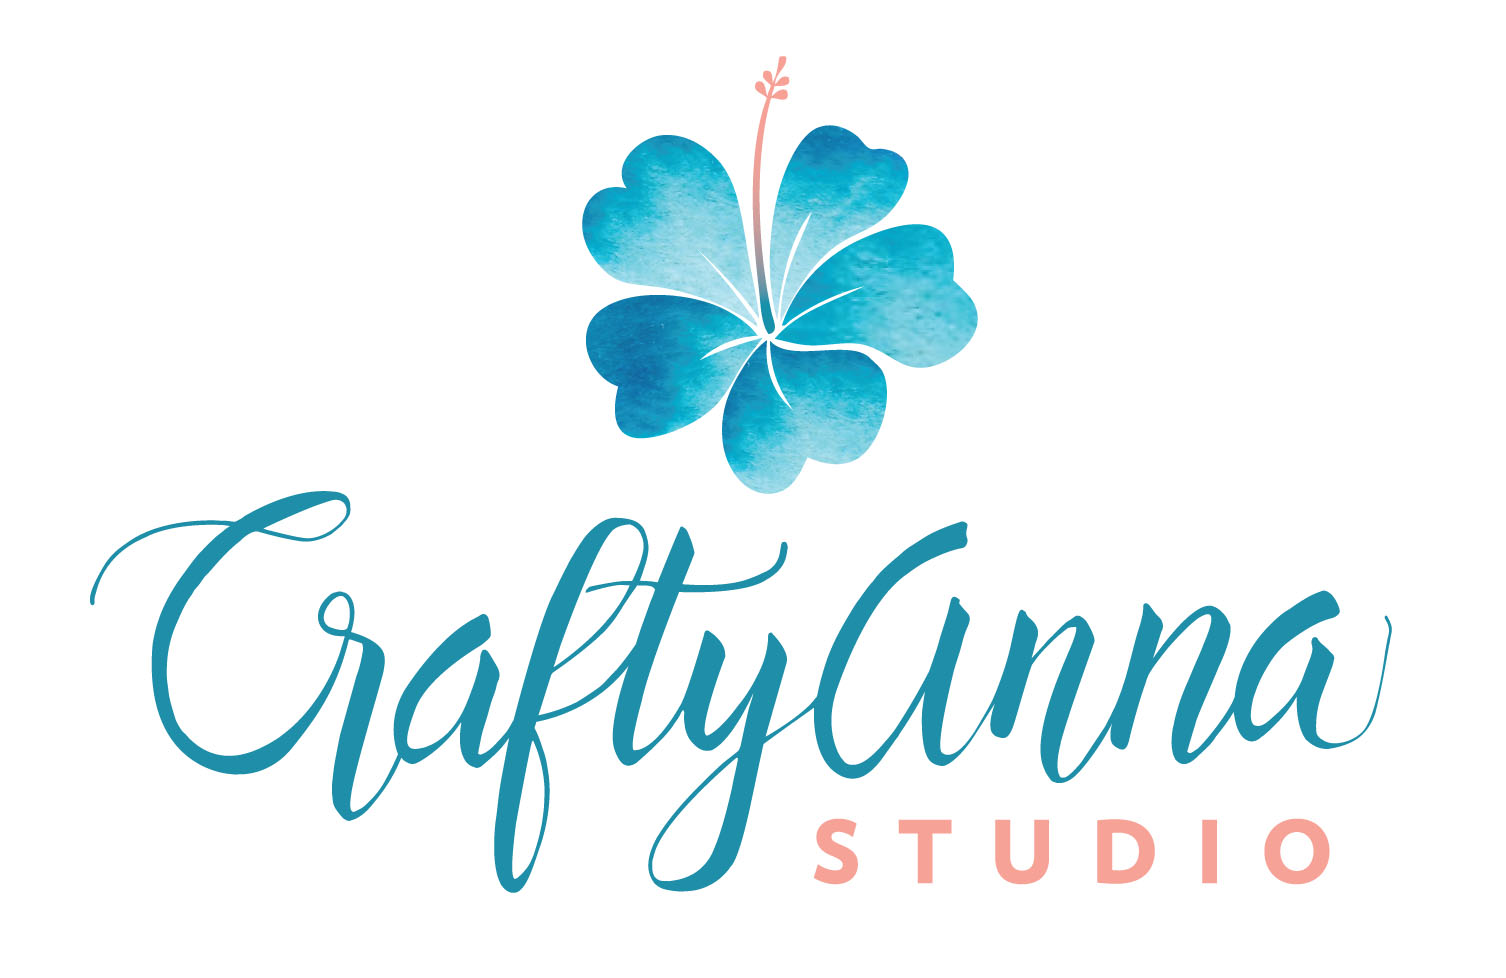 Craftyanna Studio